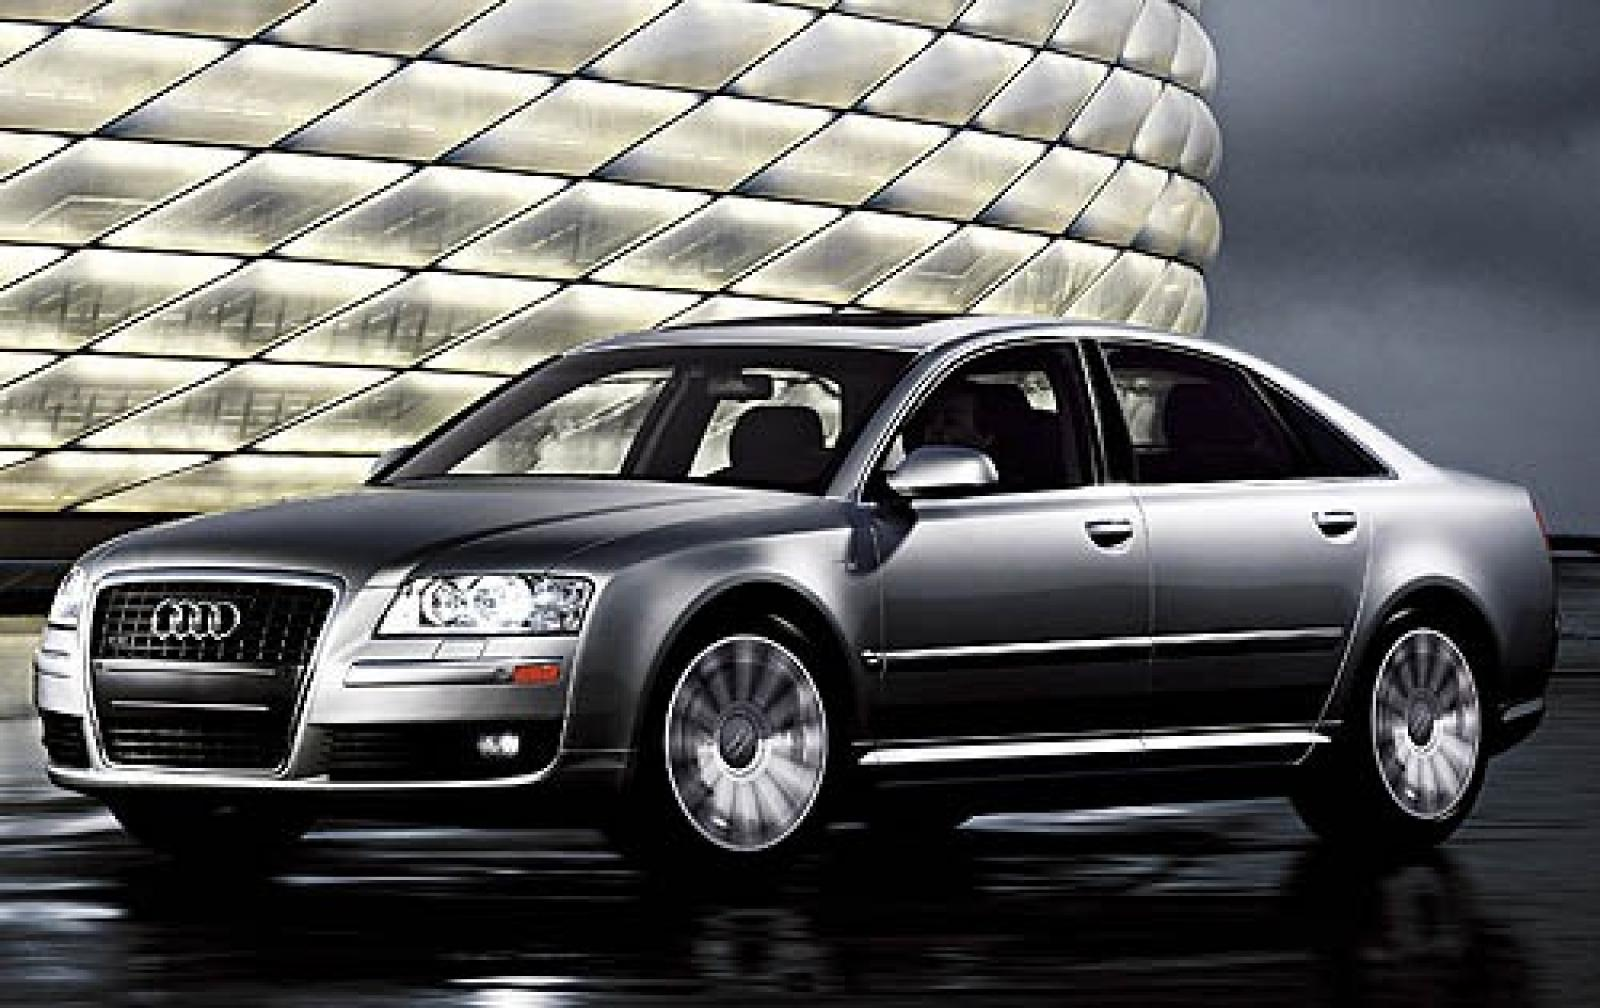 2007 audi a8 information and photos zombiedrive. Black Bedroom Furniture Sets. Home Design Ideas